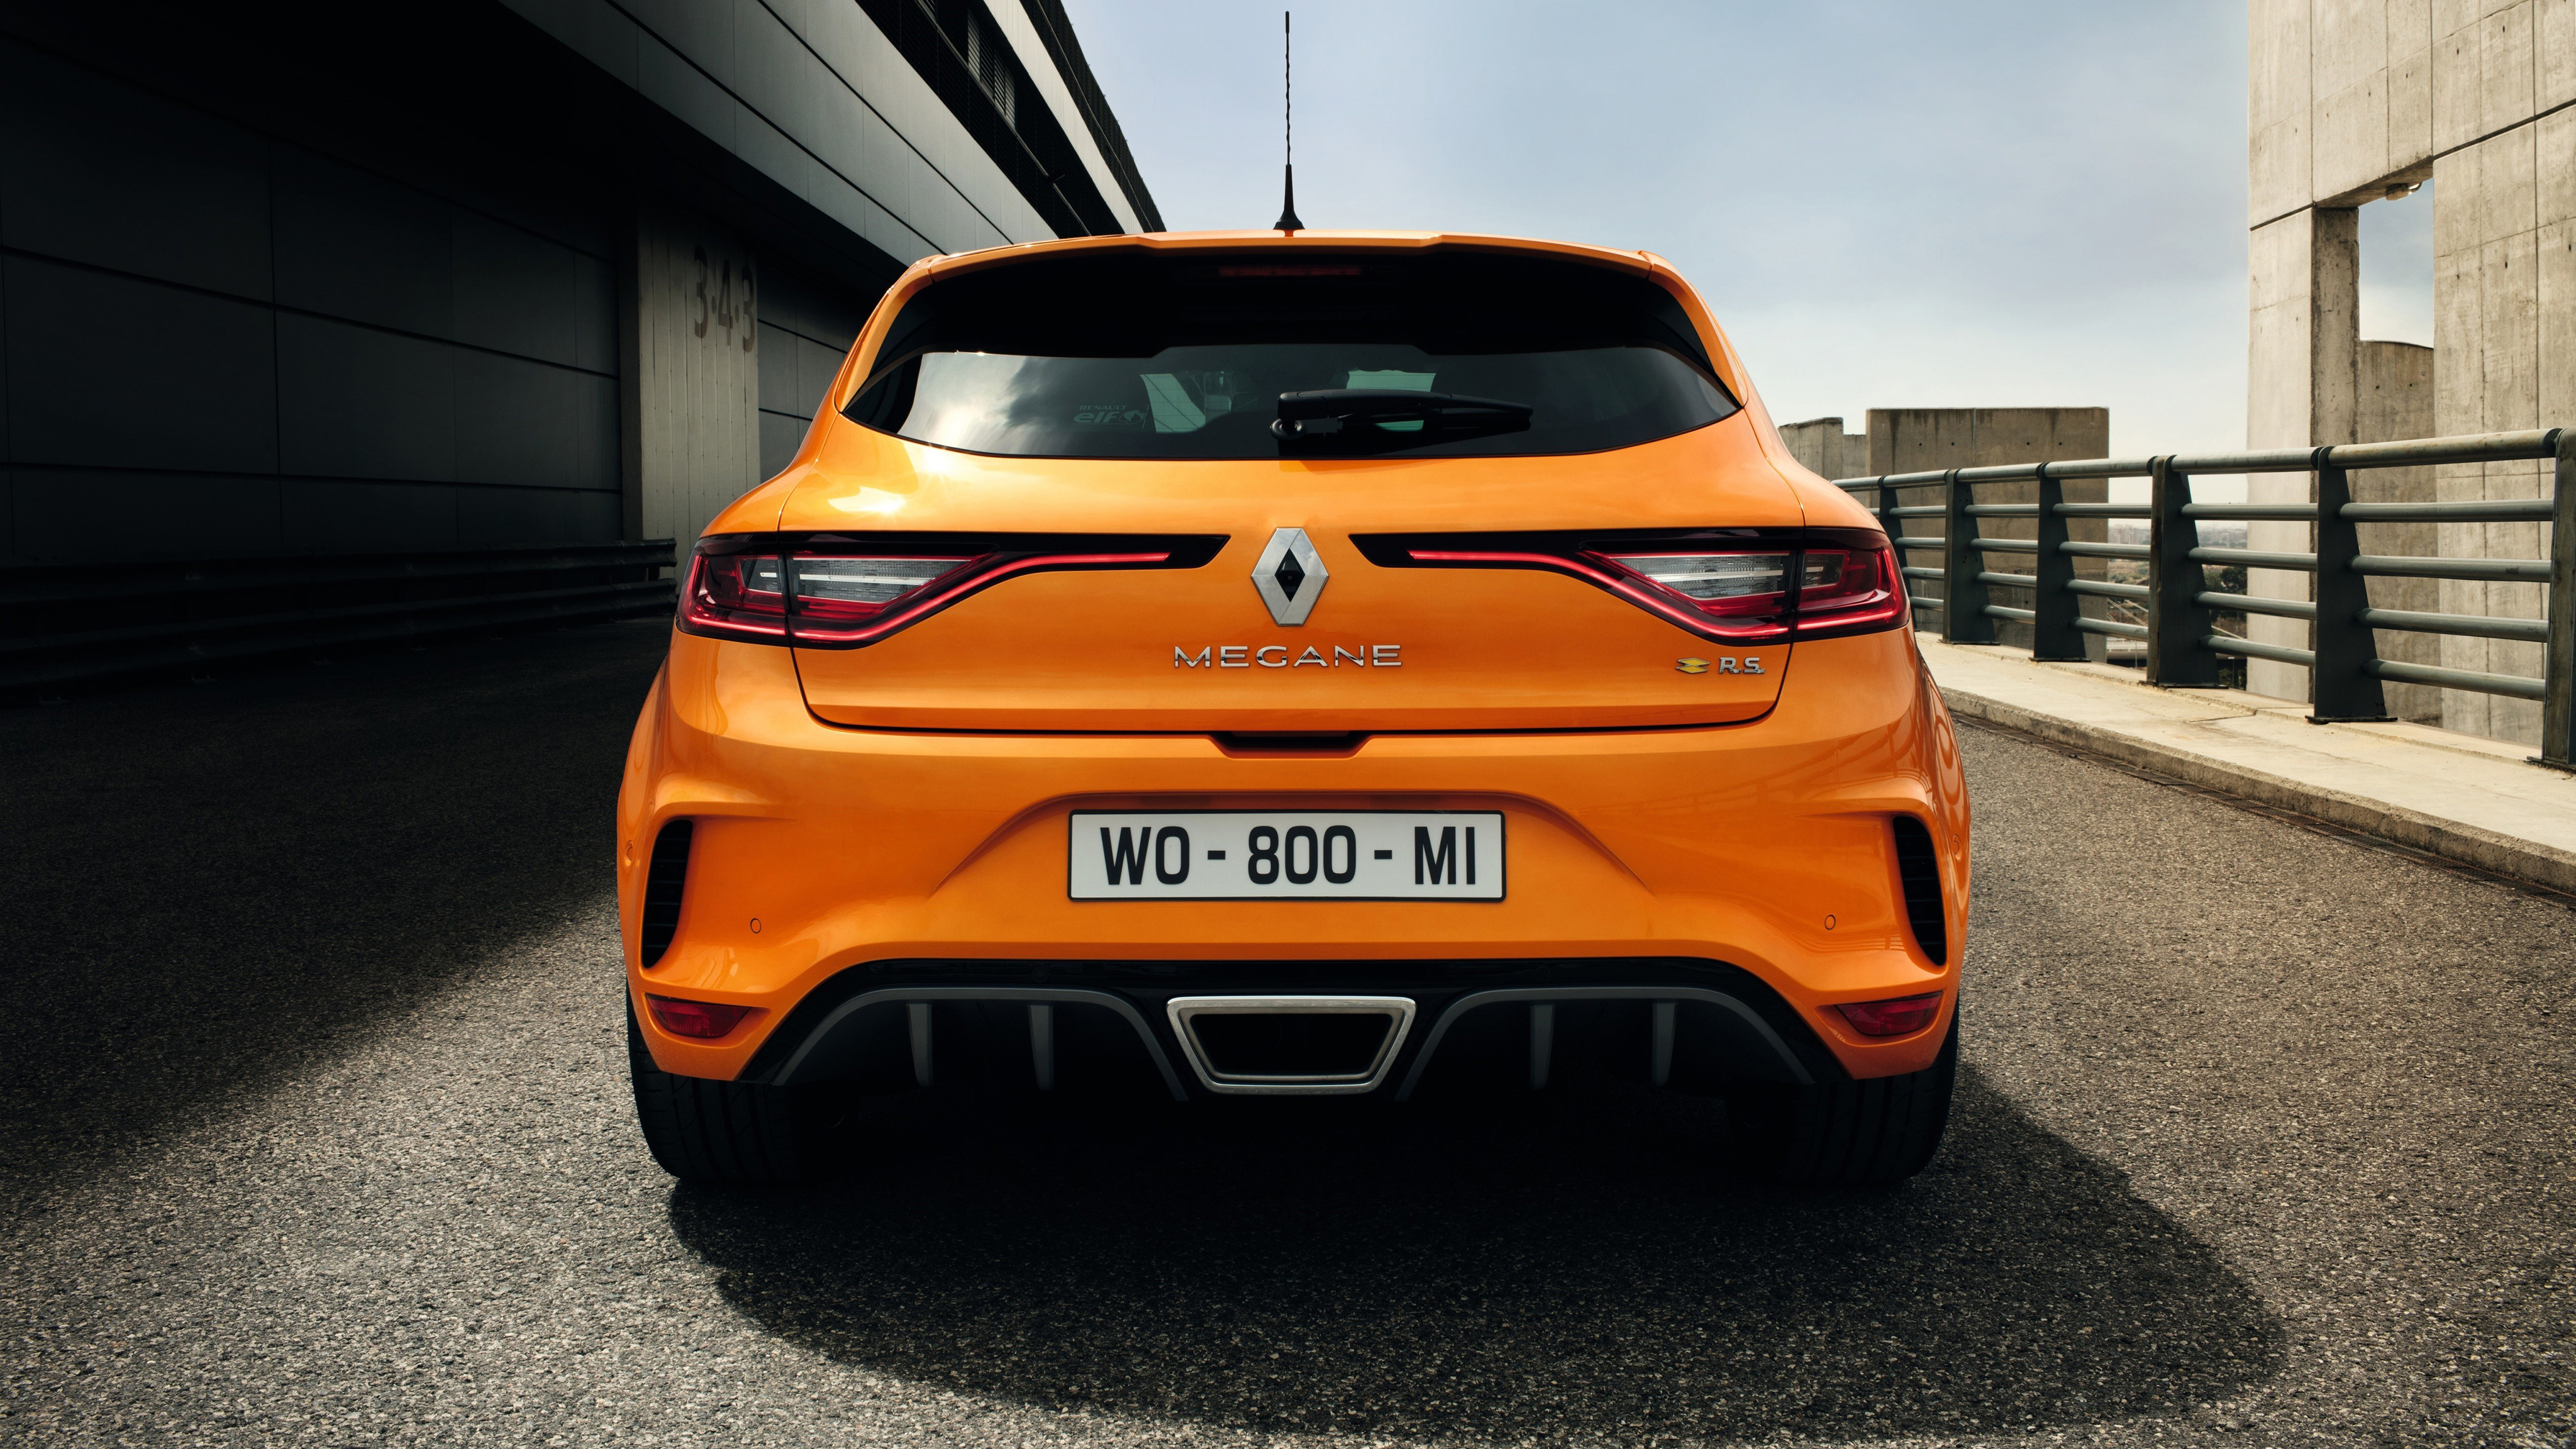 4096x2304 - Renault RS Wallpapers 10